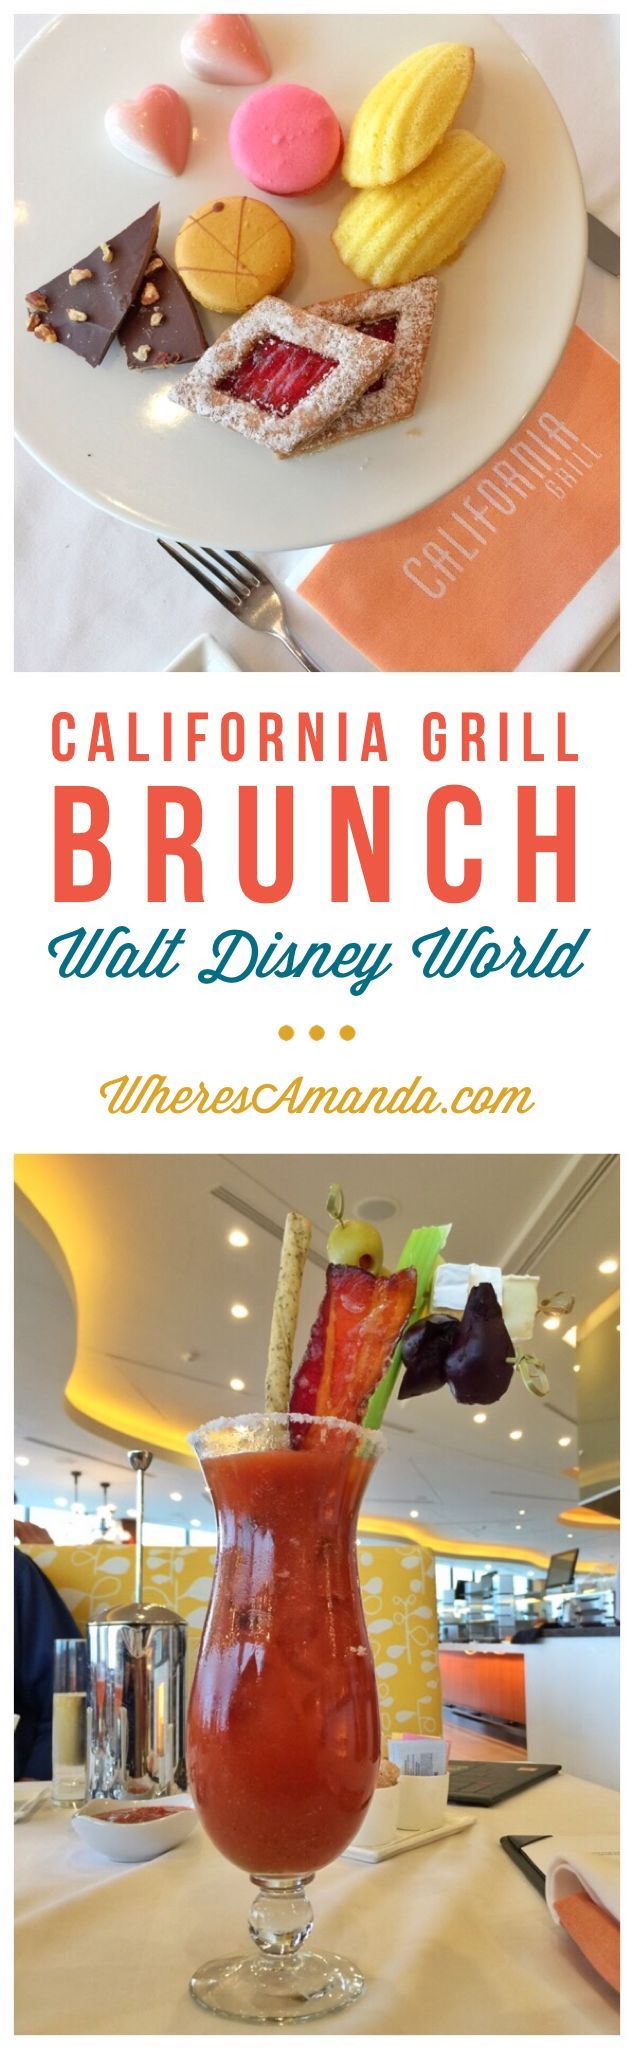 Detailed review of the decadent brunch being served every Sunday at Walt Disney World's California Grill